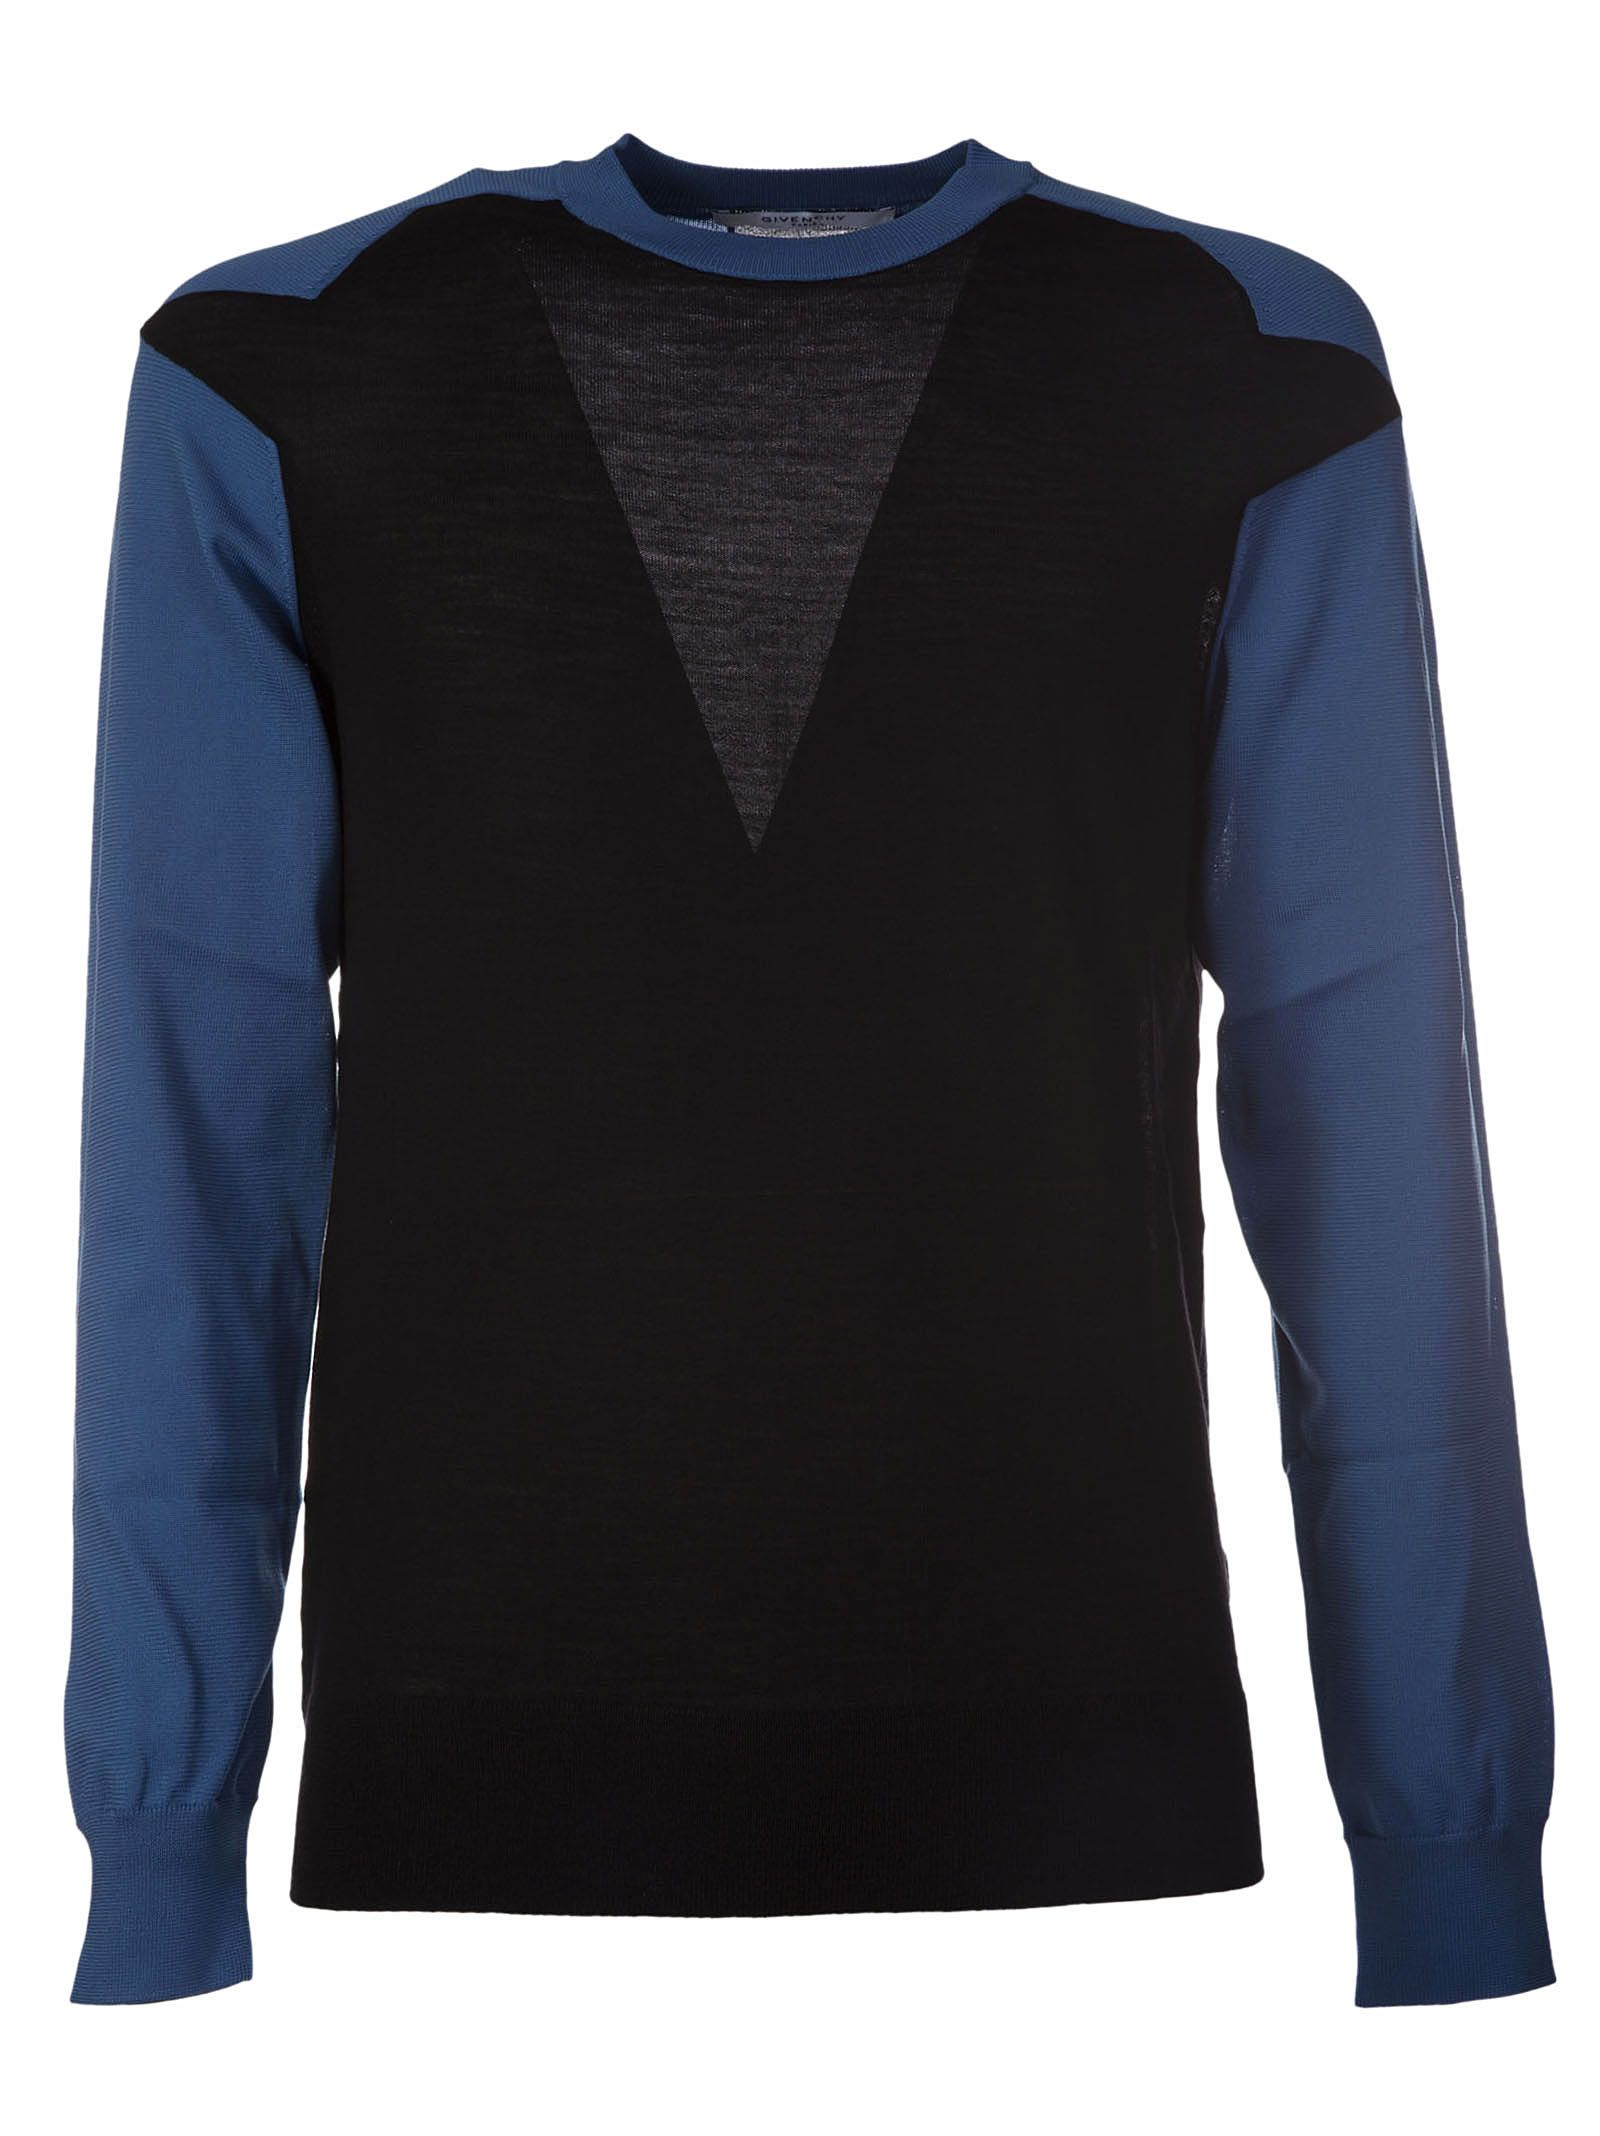 Givenchy Seam Detail Knitted Pullover